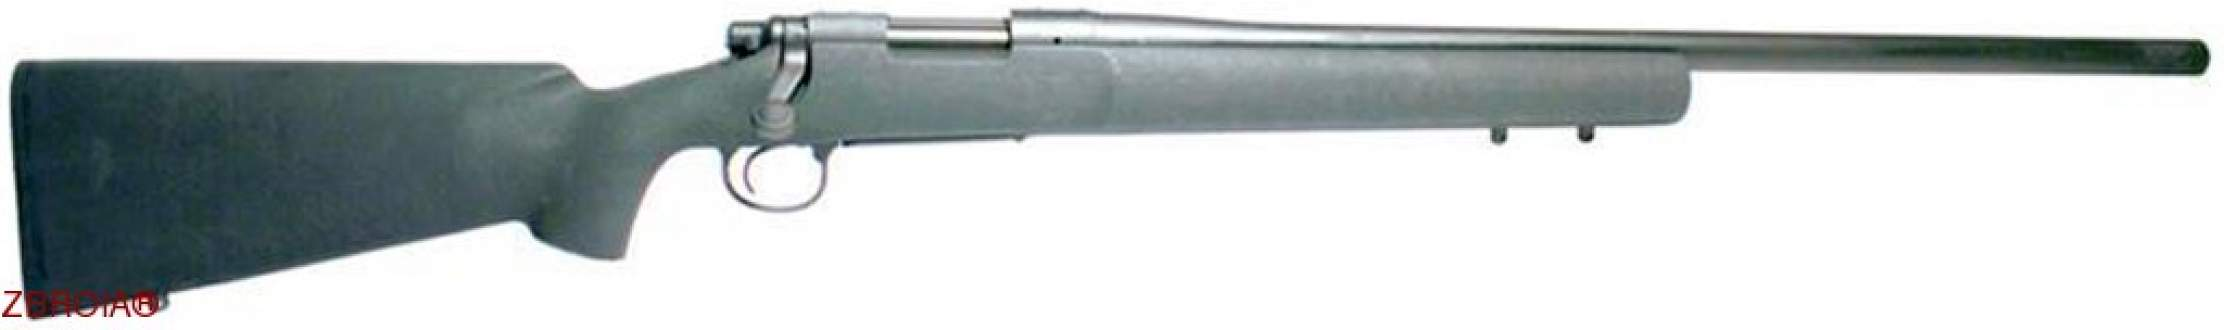 Карабин Remington 700 Police кал. 223 Rem